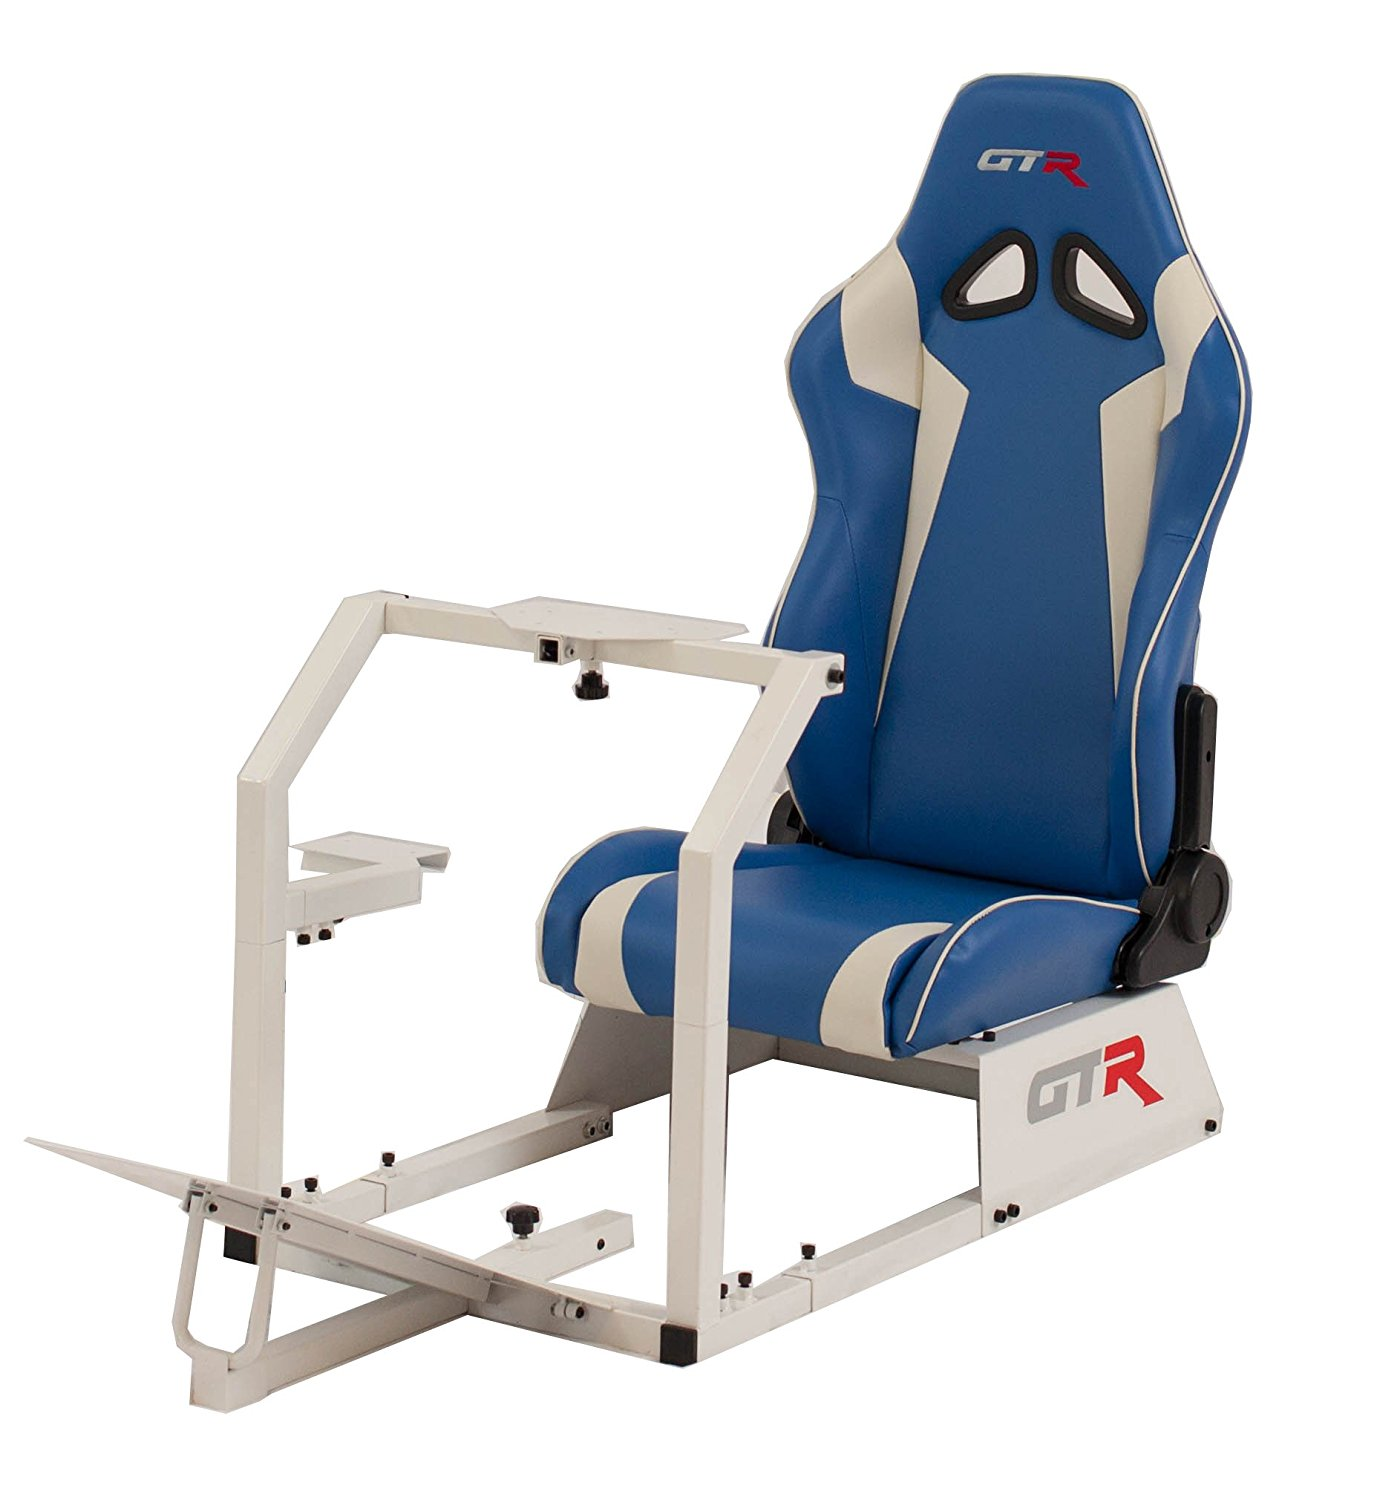 GTR Racing Simulator GTA-WHT-S105LBLWHT GTA 2017 Model White Frame with Blue/White Real Racing Seat, Driving Simulator Cockpit Gaming Chair with Gear Shifter Mount